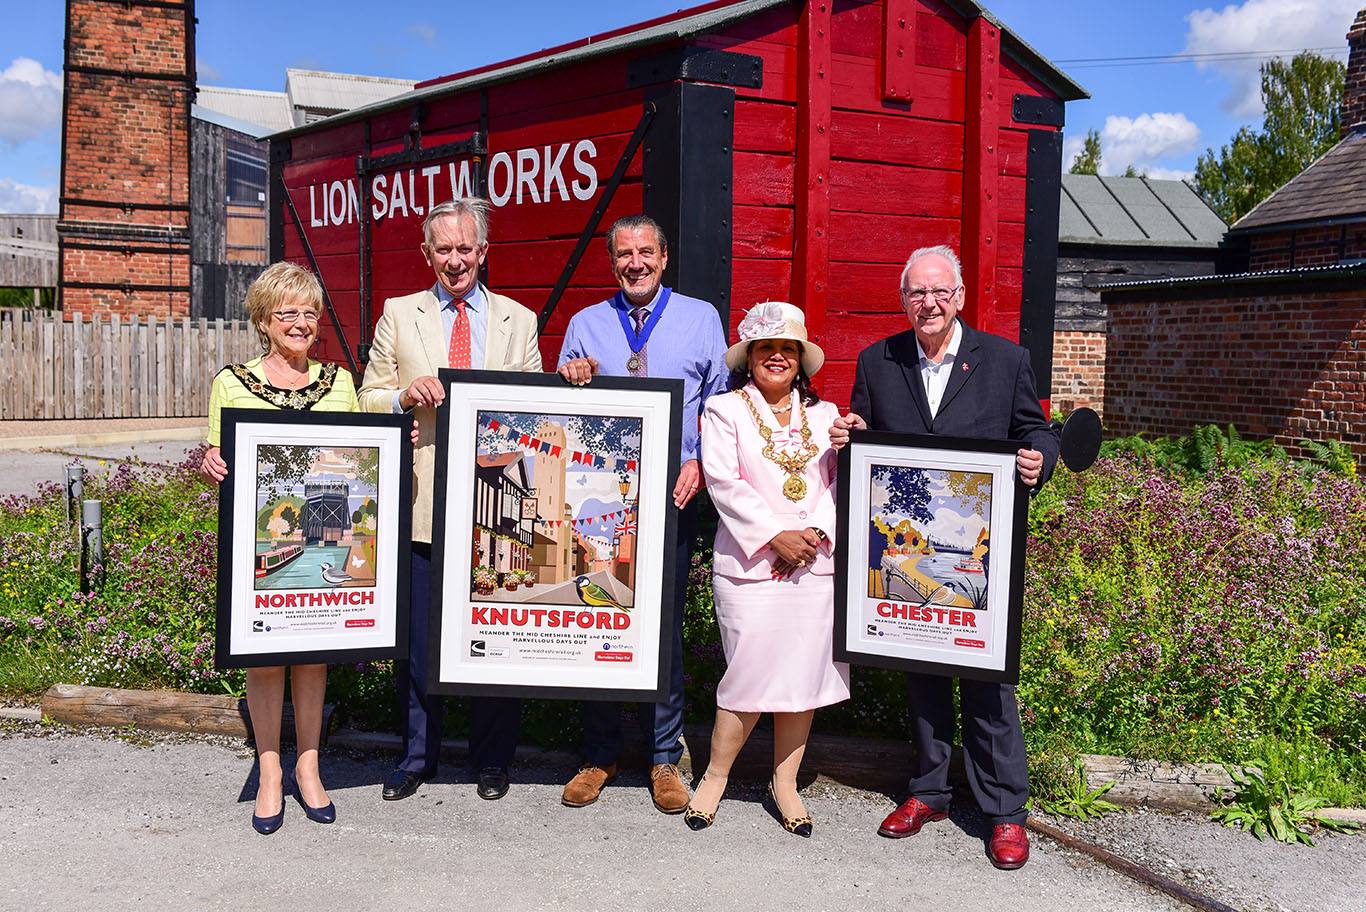 The Lord Lieutenant of Cheshire, Pete Waterman OBE and the Mayors of Northwich, Knutsford and Chester at the opening of the MDO exhibition at the Lion Salt Works Museum.jpg